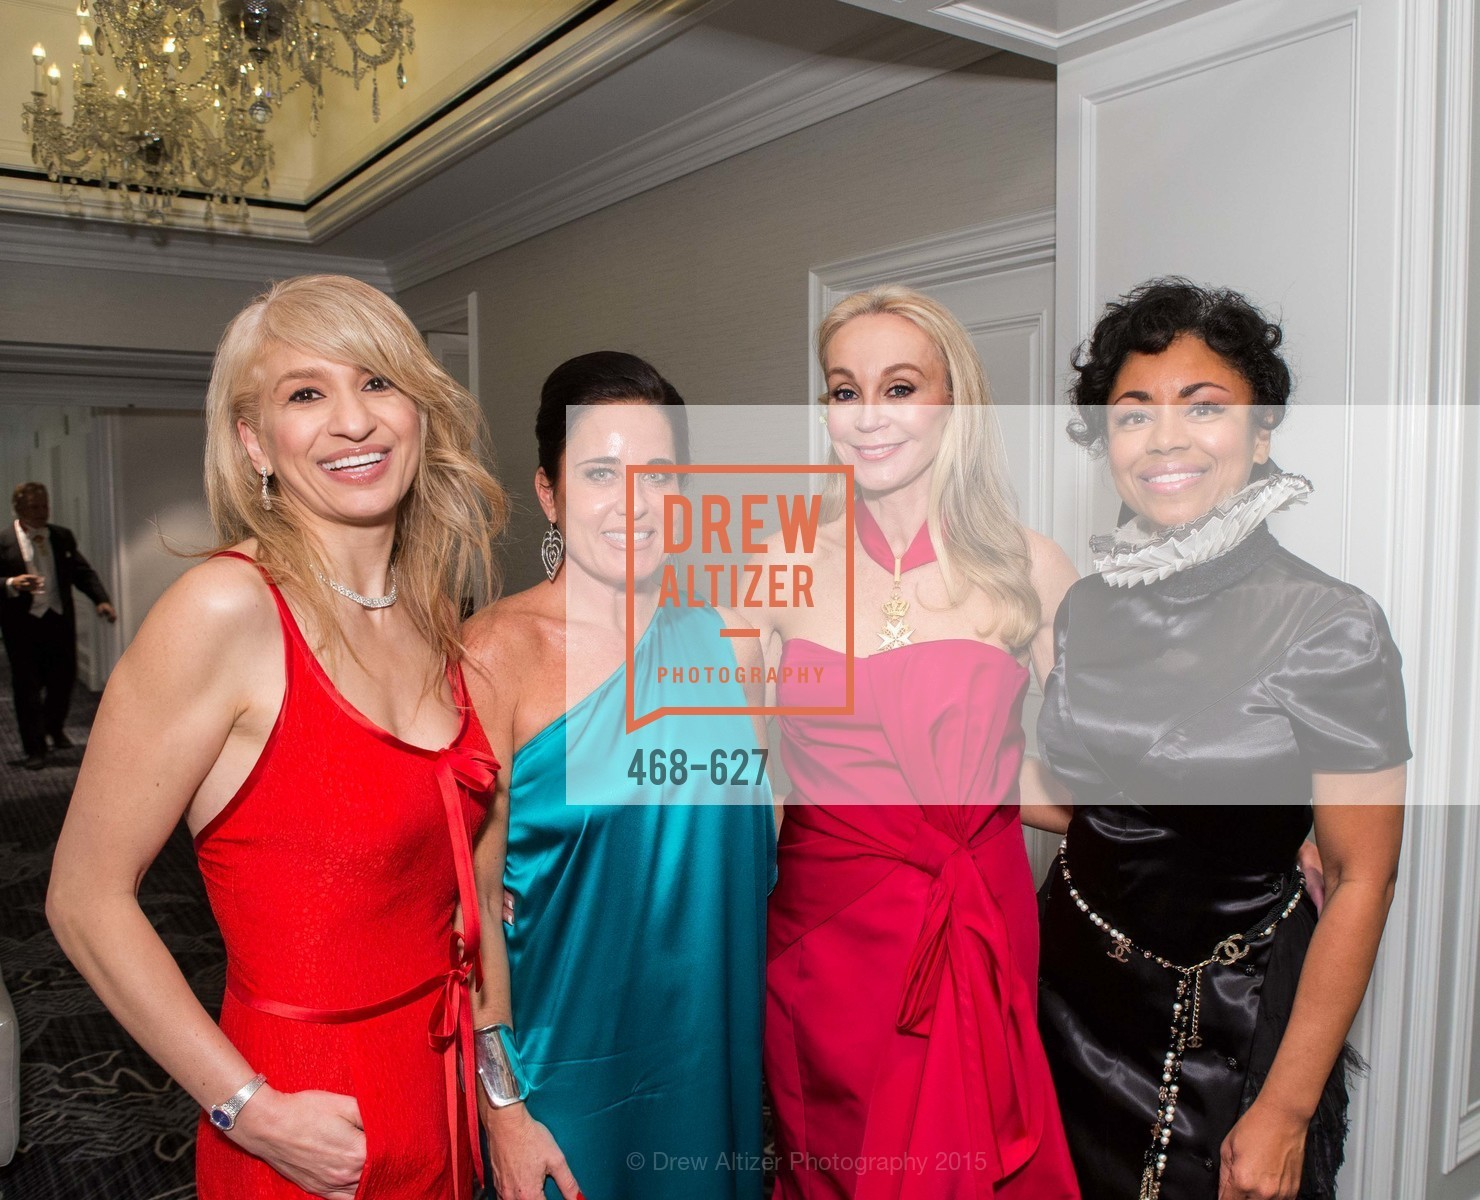 Navid Armstrong, Natalia Urrutia, Giselle Anna Parry, Tanya Powell, Sovereign Order Of St John of Jerusalem Knights Hospitaller Gala, Ritz Carlton San Francisco, December 5th, 2015,Drew Altizer, Drew Altizer Photography, full-service agency, private events, San Francisco photographer, photographer california